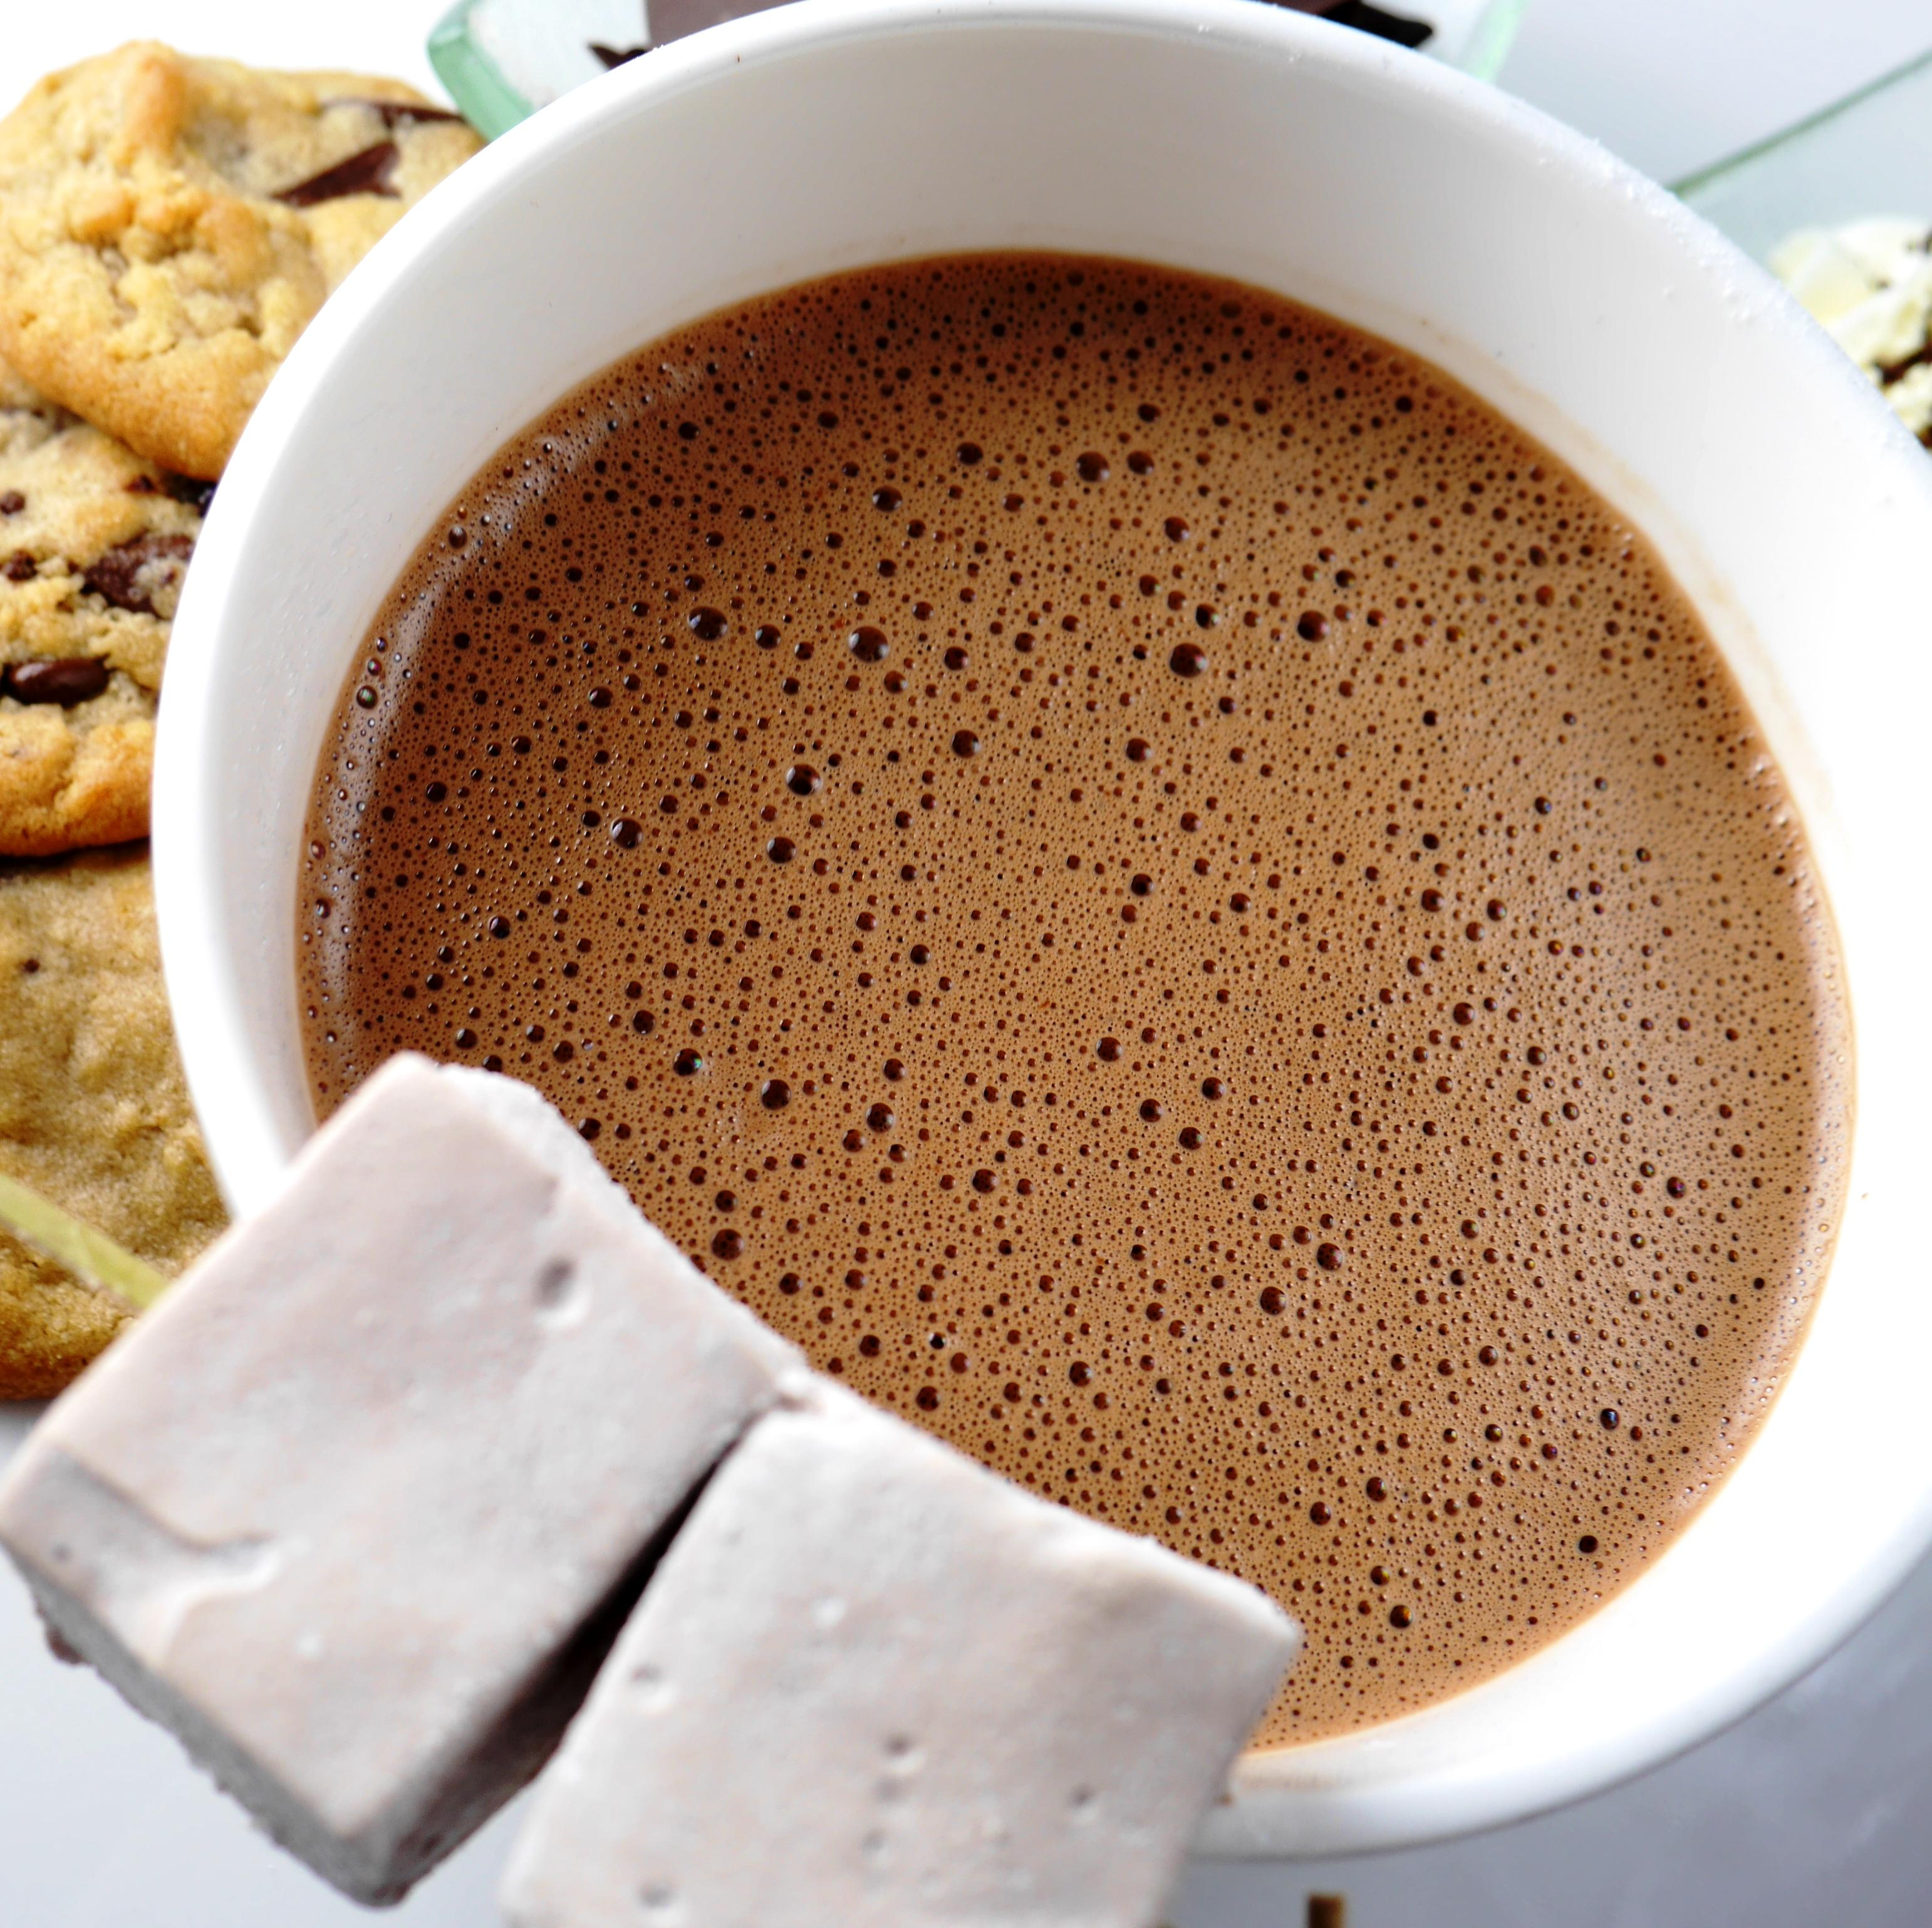 Hot chocolate at Fairmont.{&nbsp;} (Image: Courtesy The Fairmont Washington){&nbsp;}<p></p>